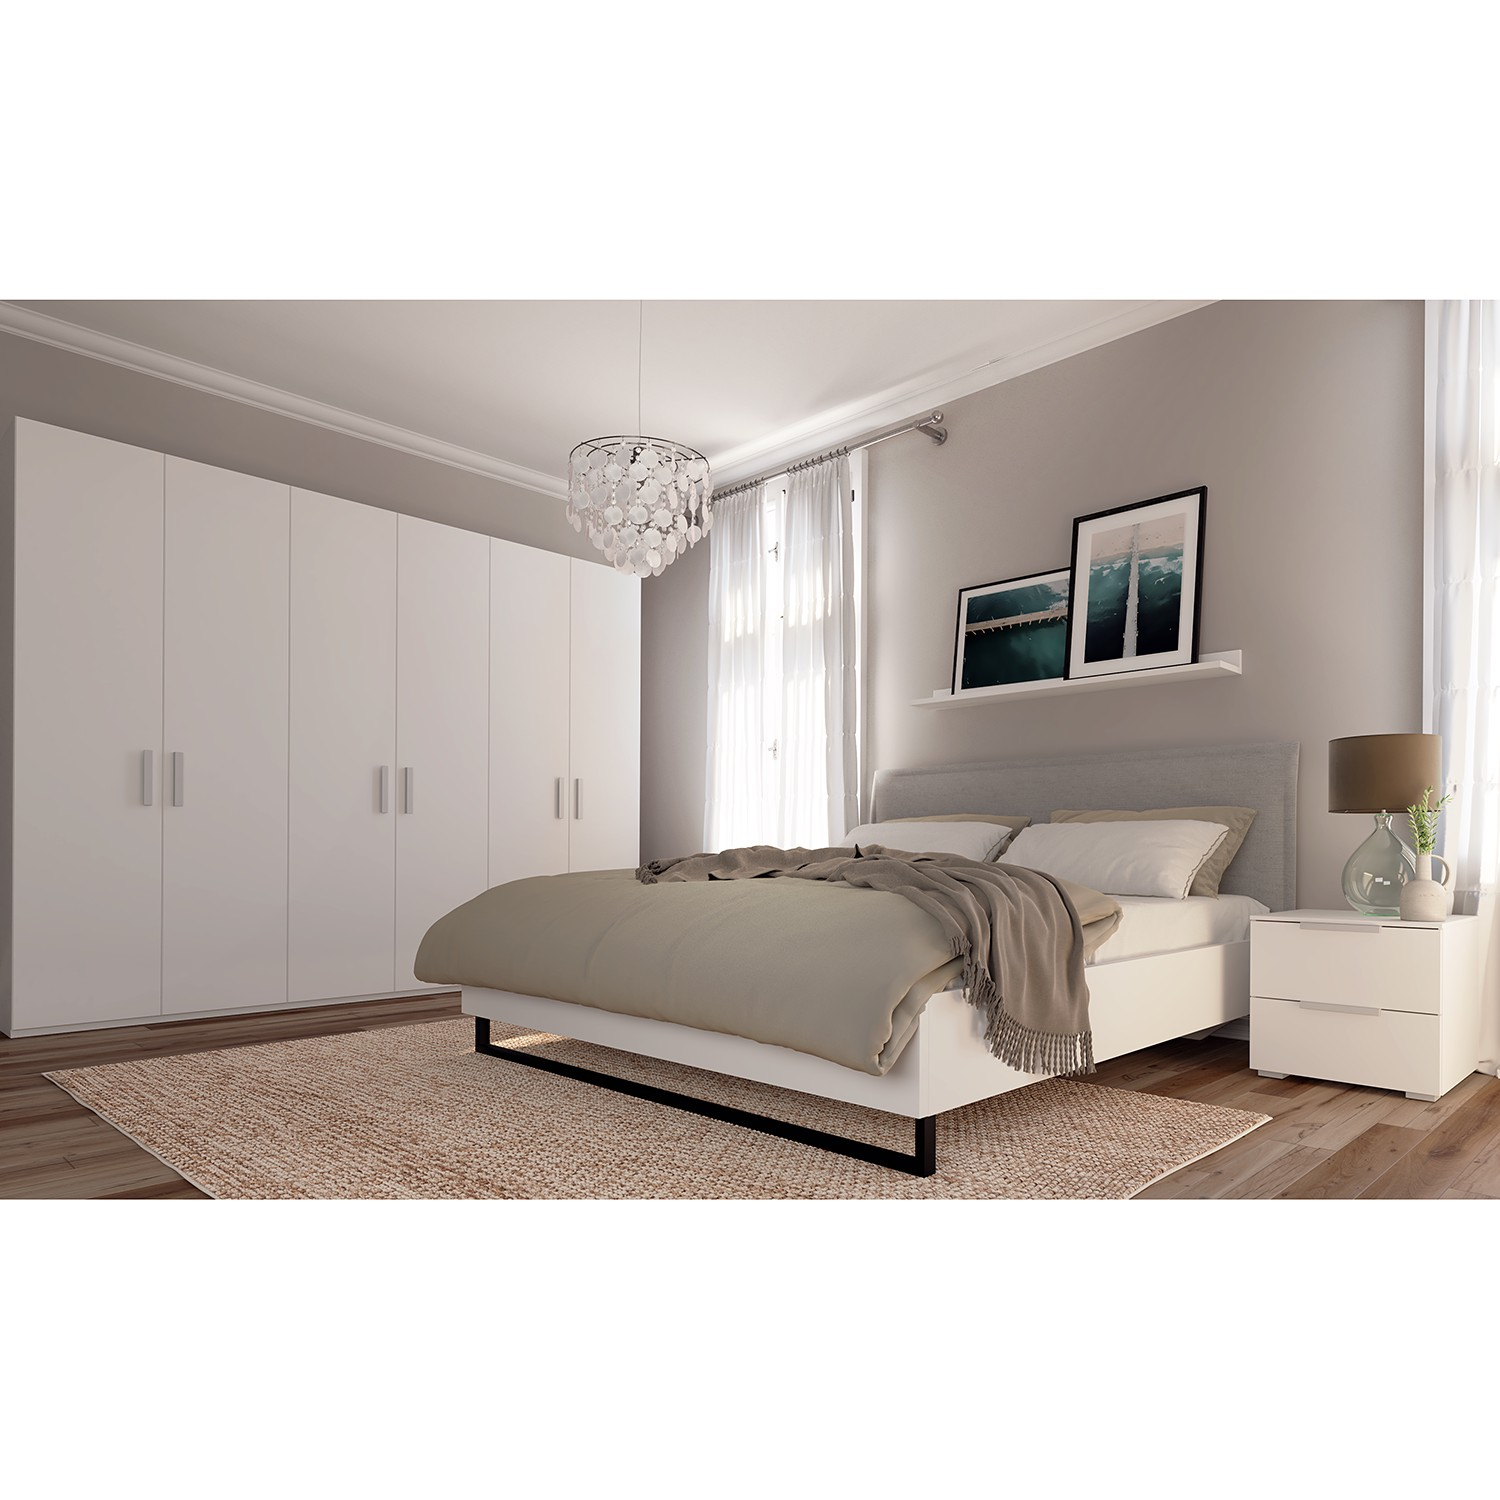 Armoire SKOEP I